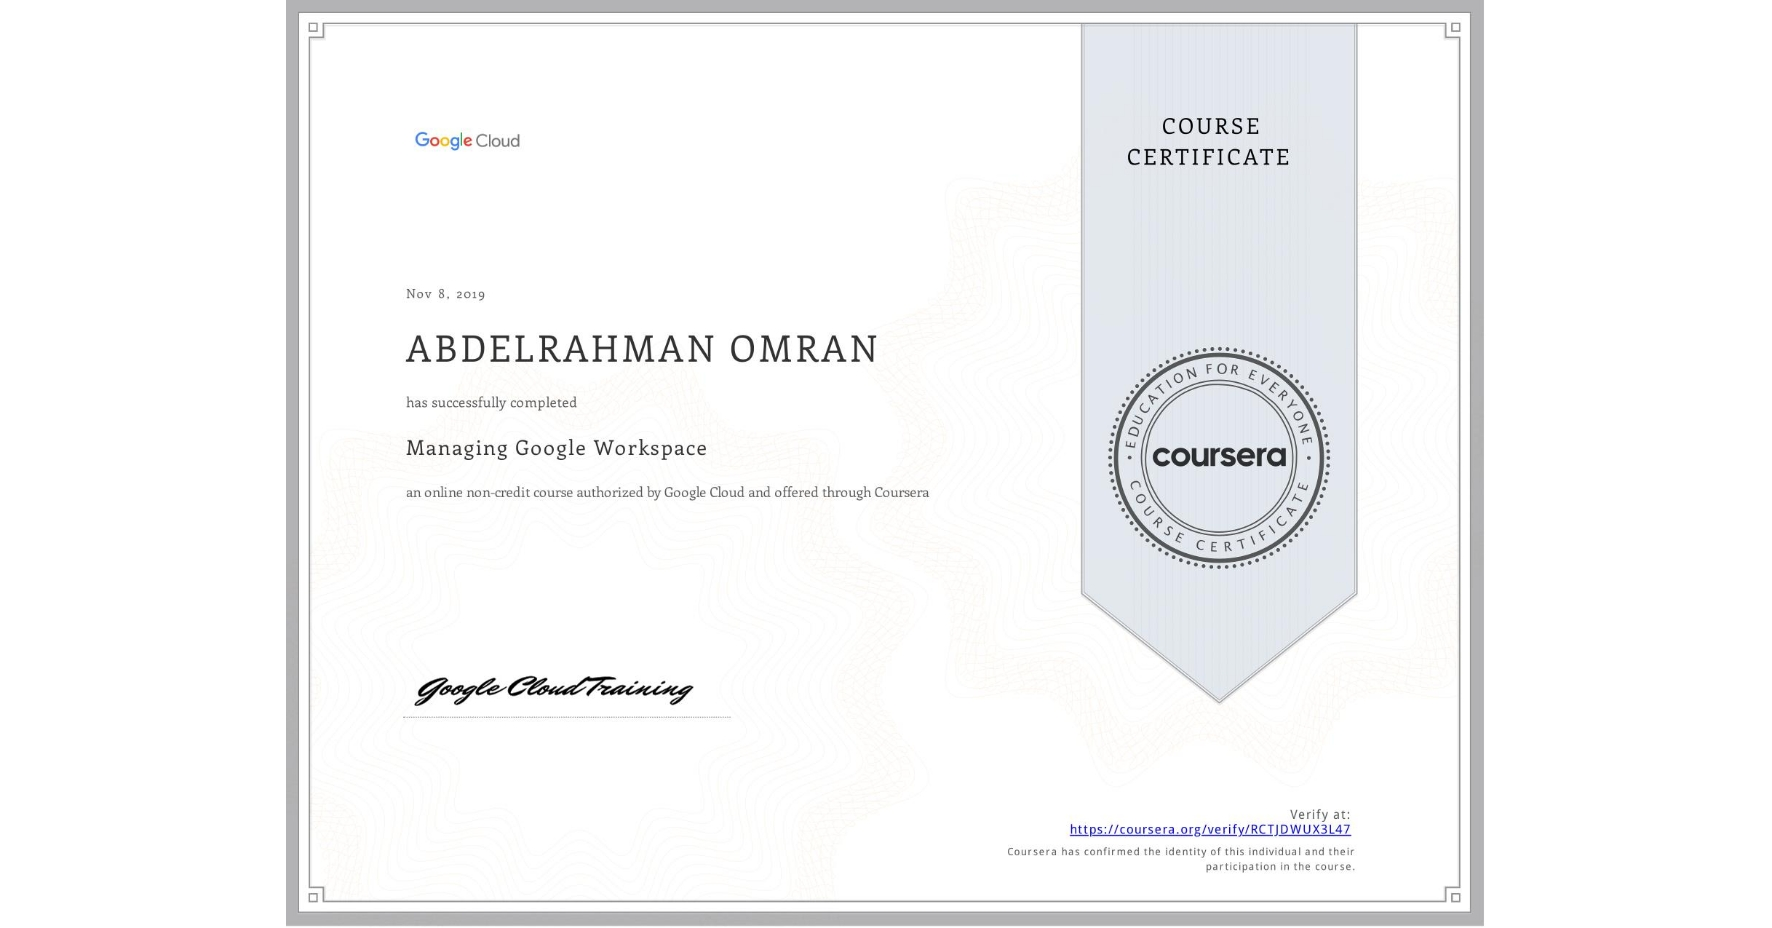 View certificate for ABDELRAHMAN OMRAN, Managing Google Workspace, an online non-credit course authorized by Google Cloud and offered through Coursera